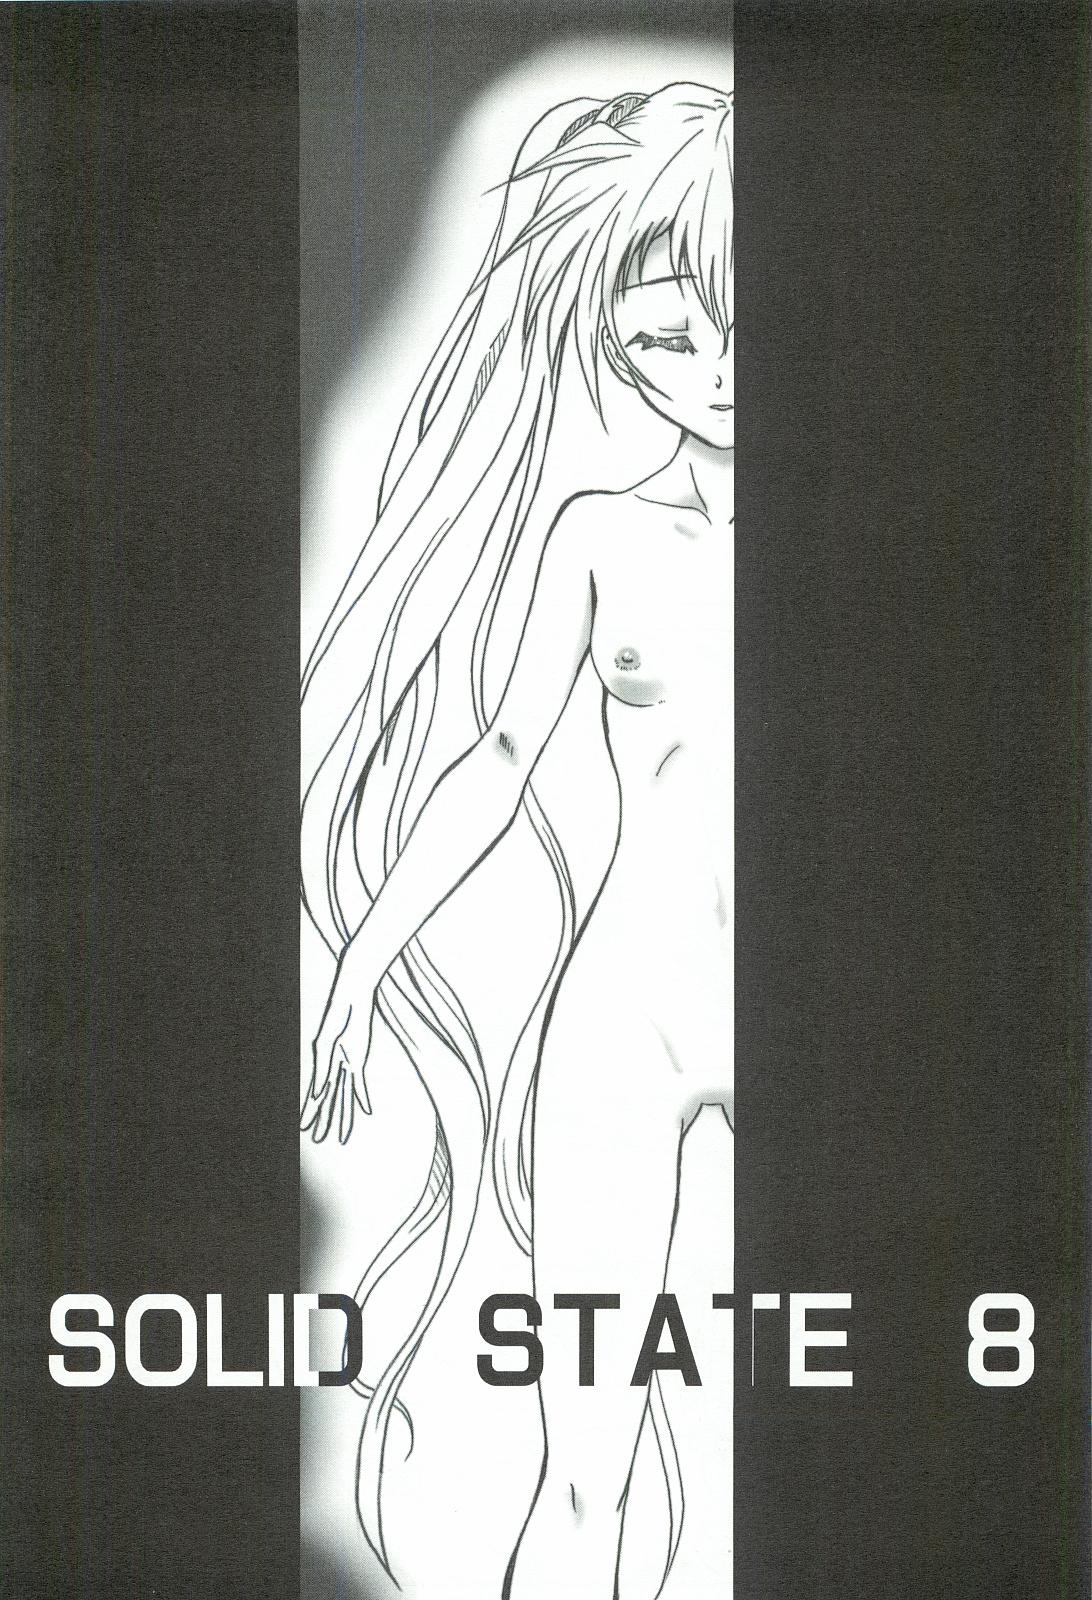 SOLID STATE 8 6